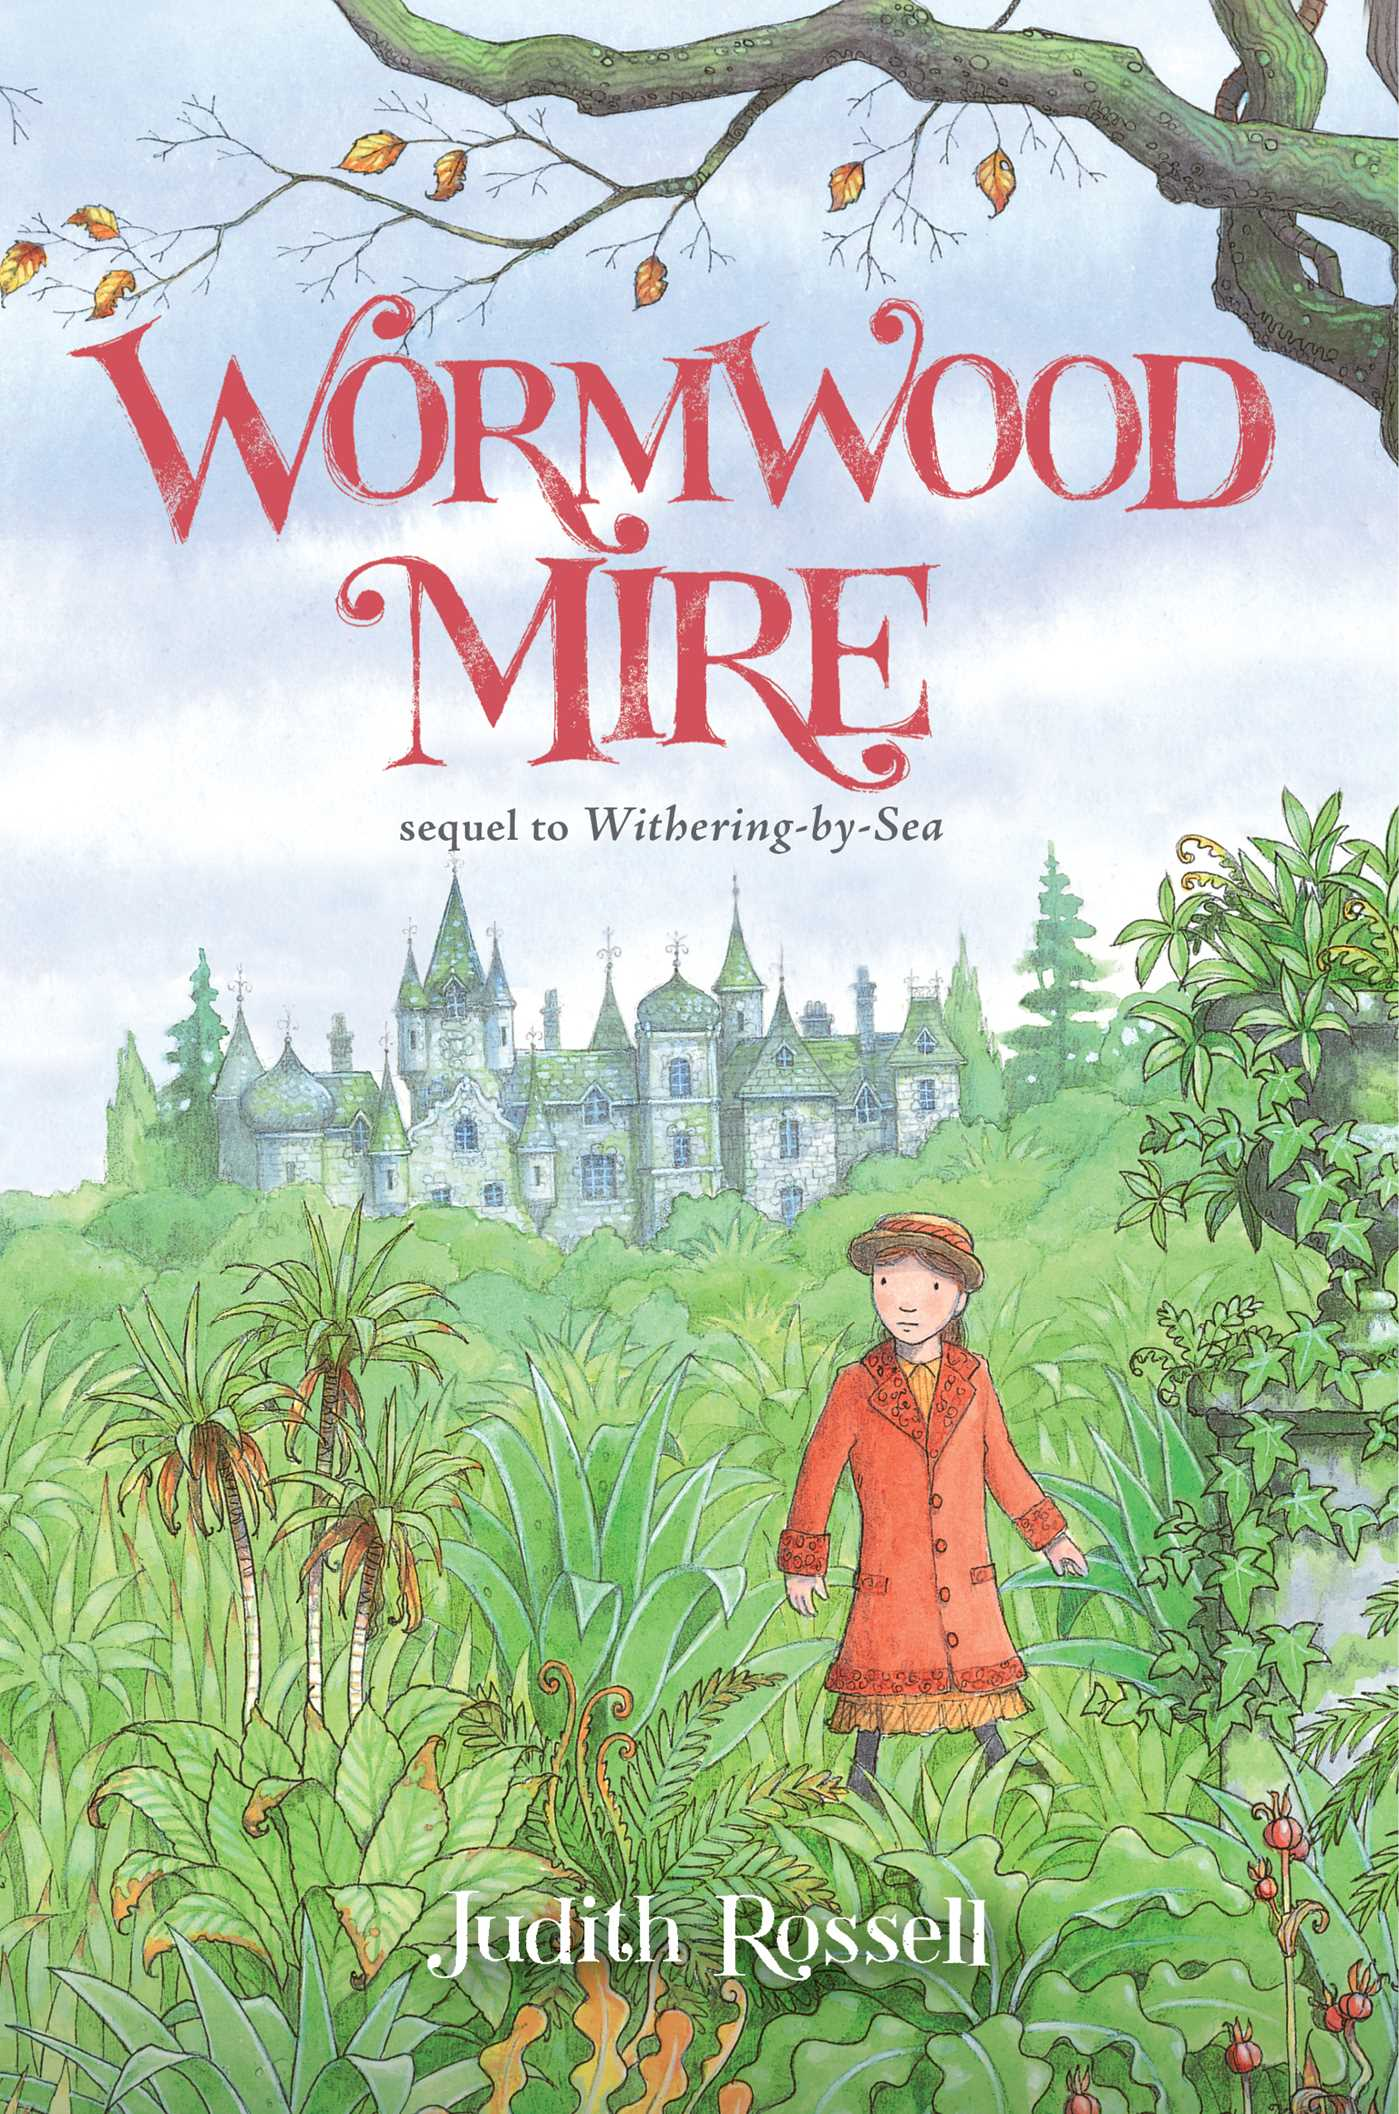 Wormwood mire 9781481443708 hr